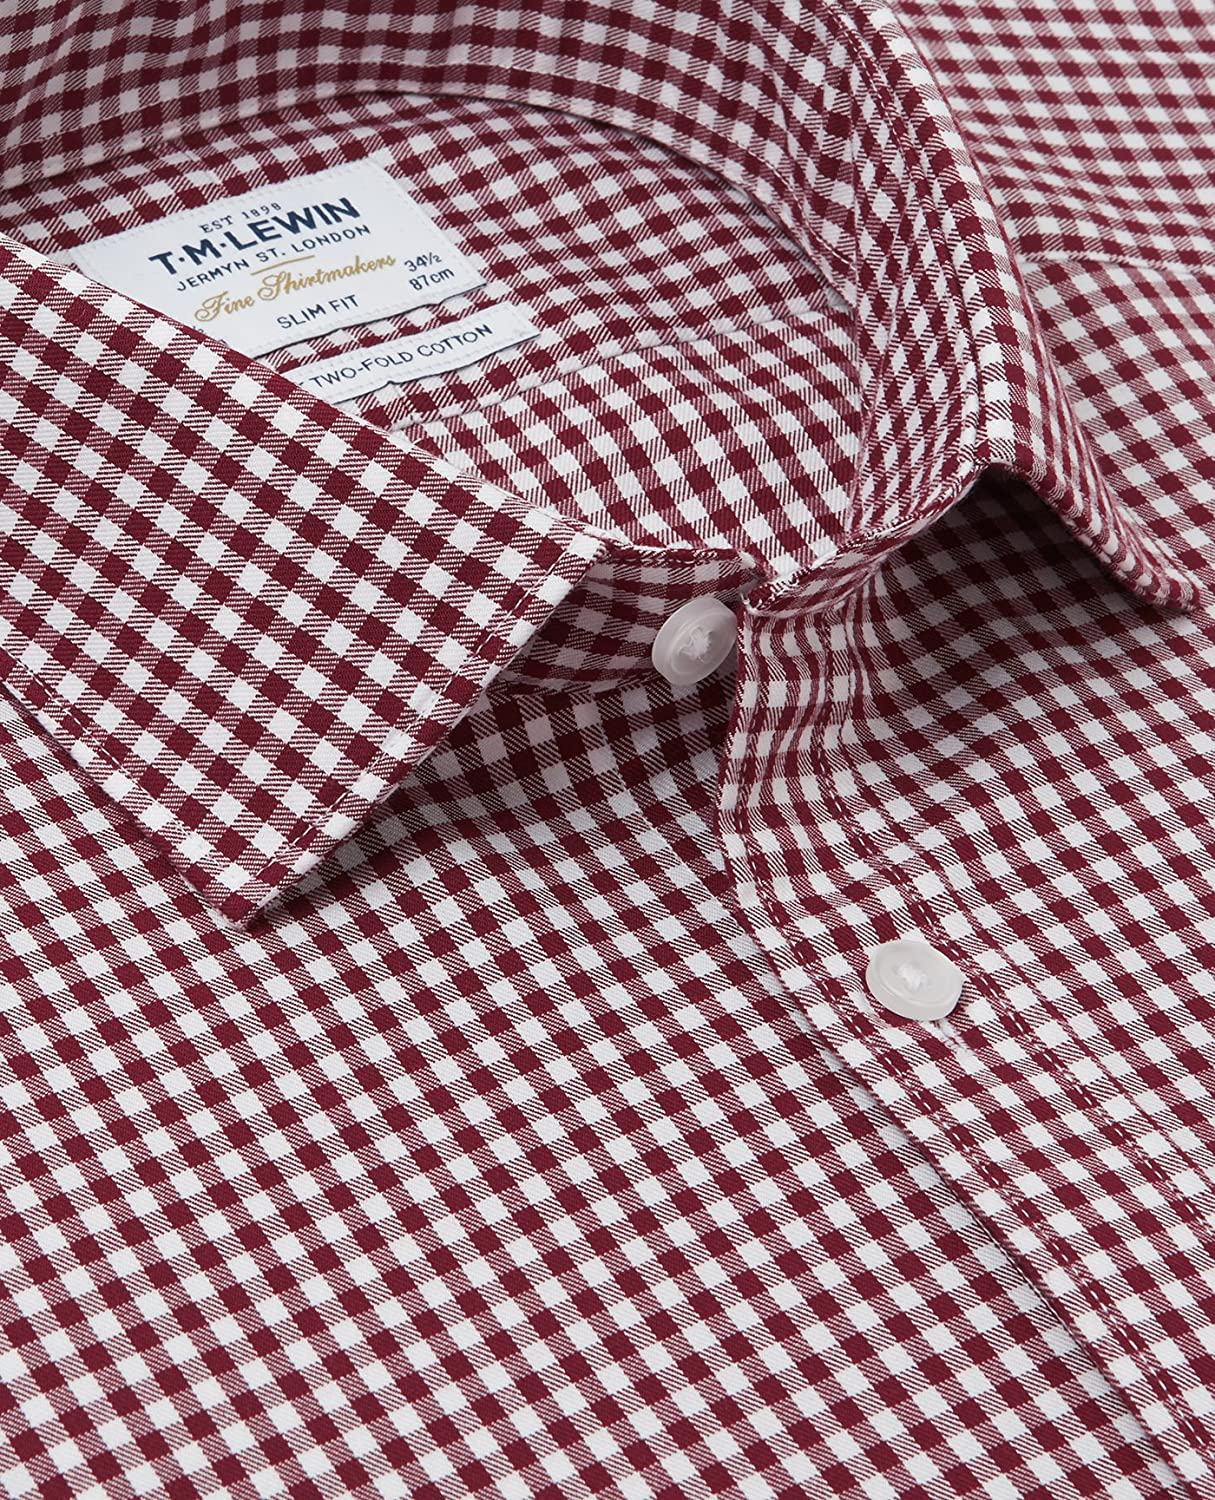 9d989b63 T.M.Lewin Men's Slim Fit Gingham Check Burgundy Shirt - Button Cuff:  Amazon.co.uk: Clothing